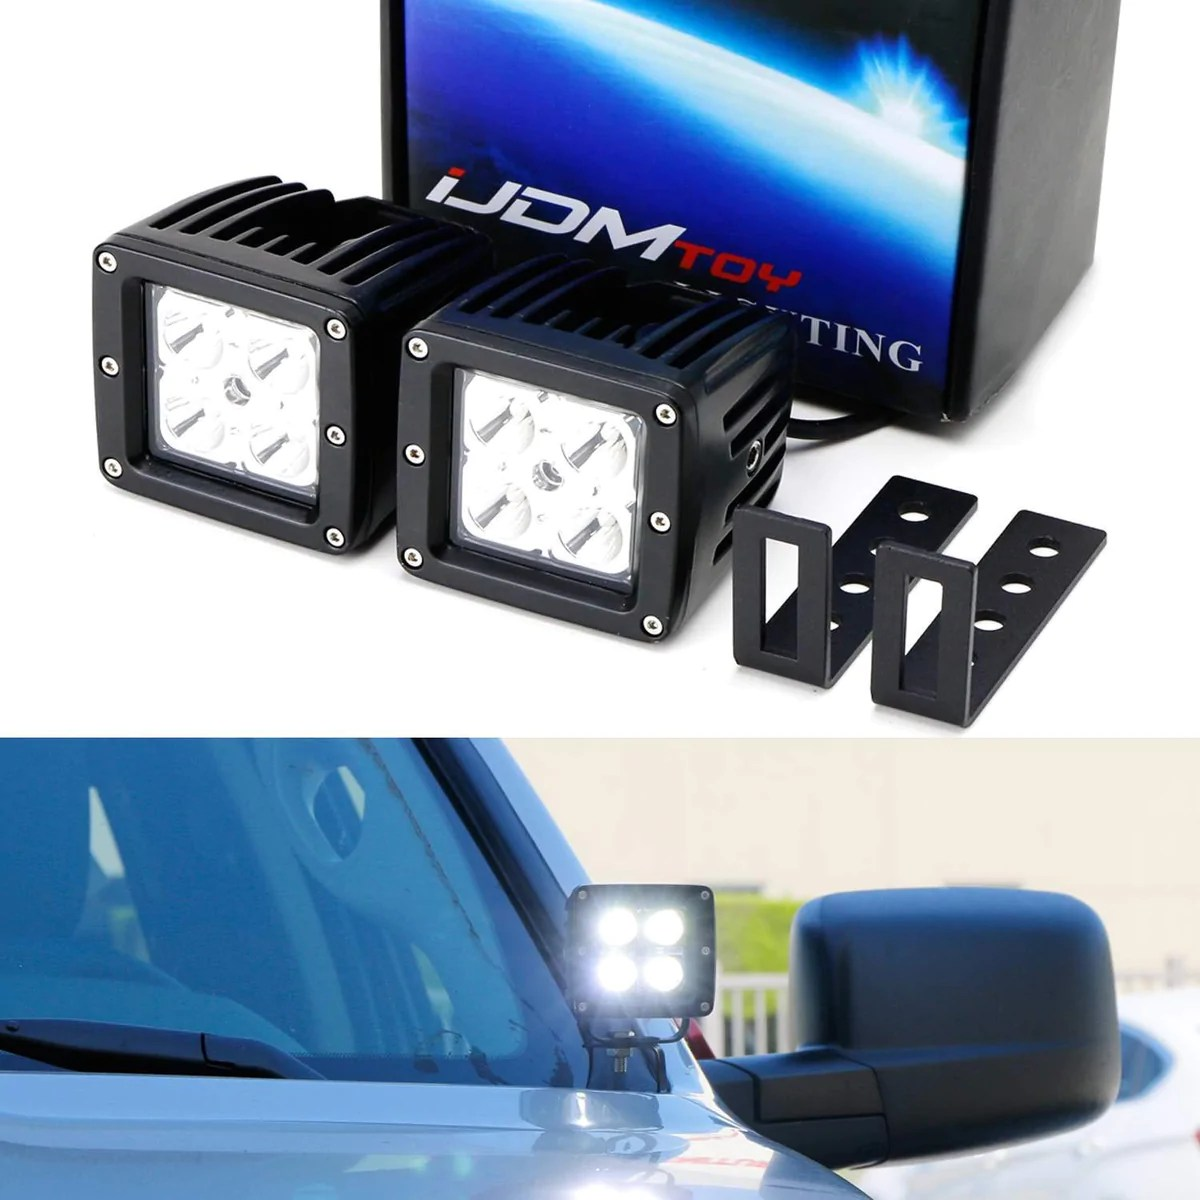 medium resolution of  2015 up chevy silverado colorado gmc sierra canyon includes 2 20w cree led cubes windshield a pillar mounting brackets on off switch wiring kit